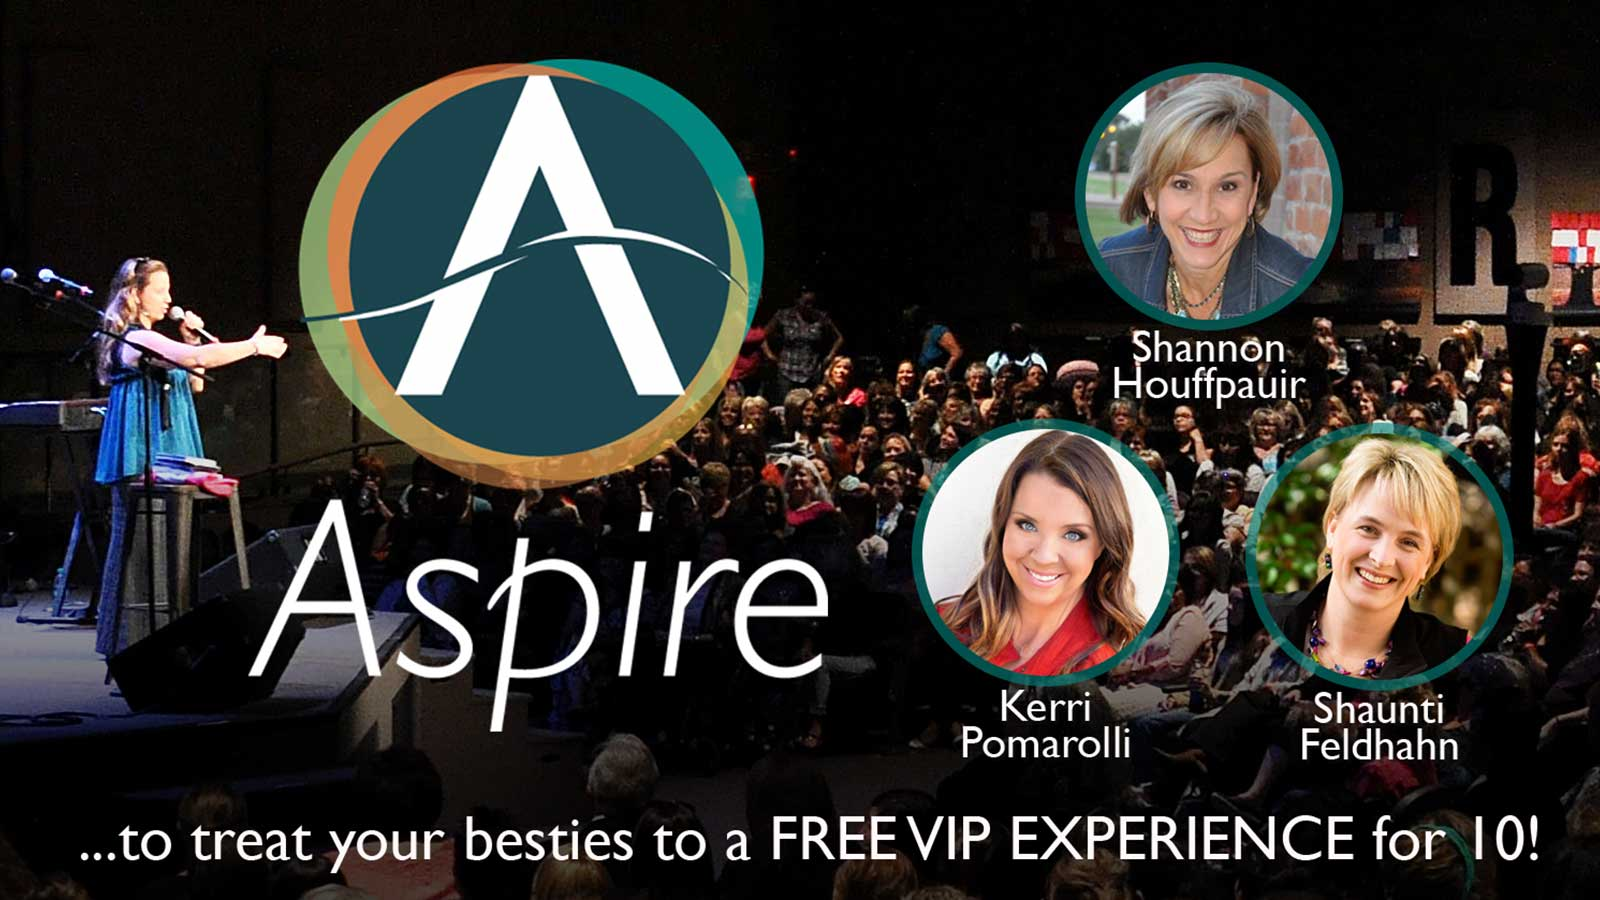 Aspire VIP Experience